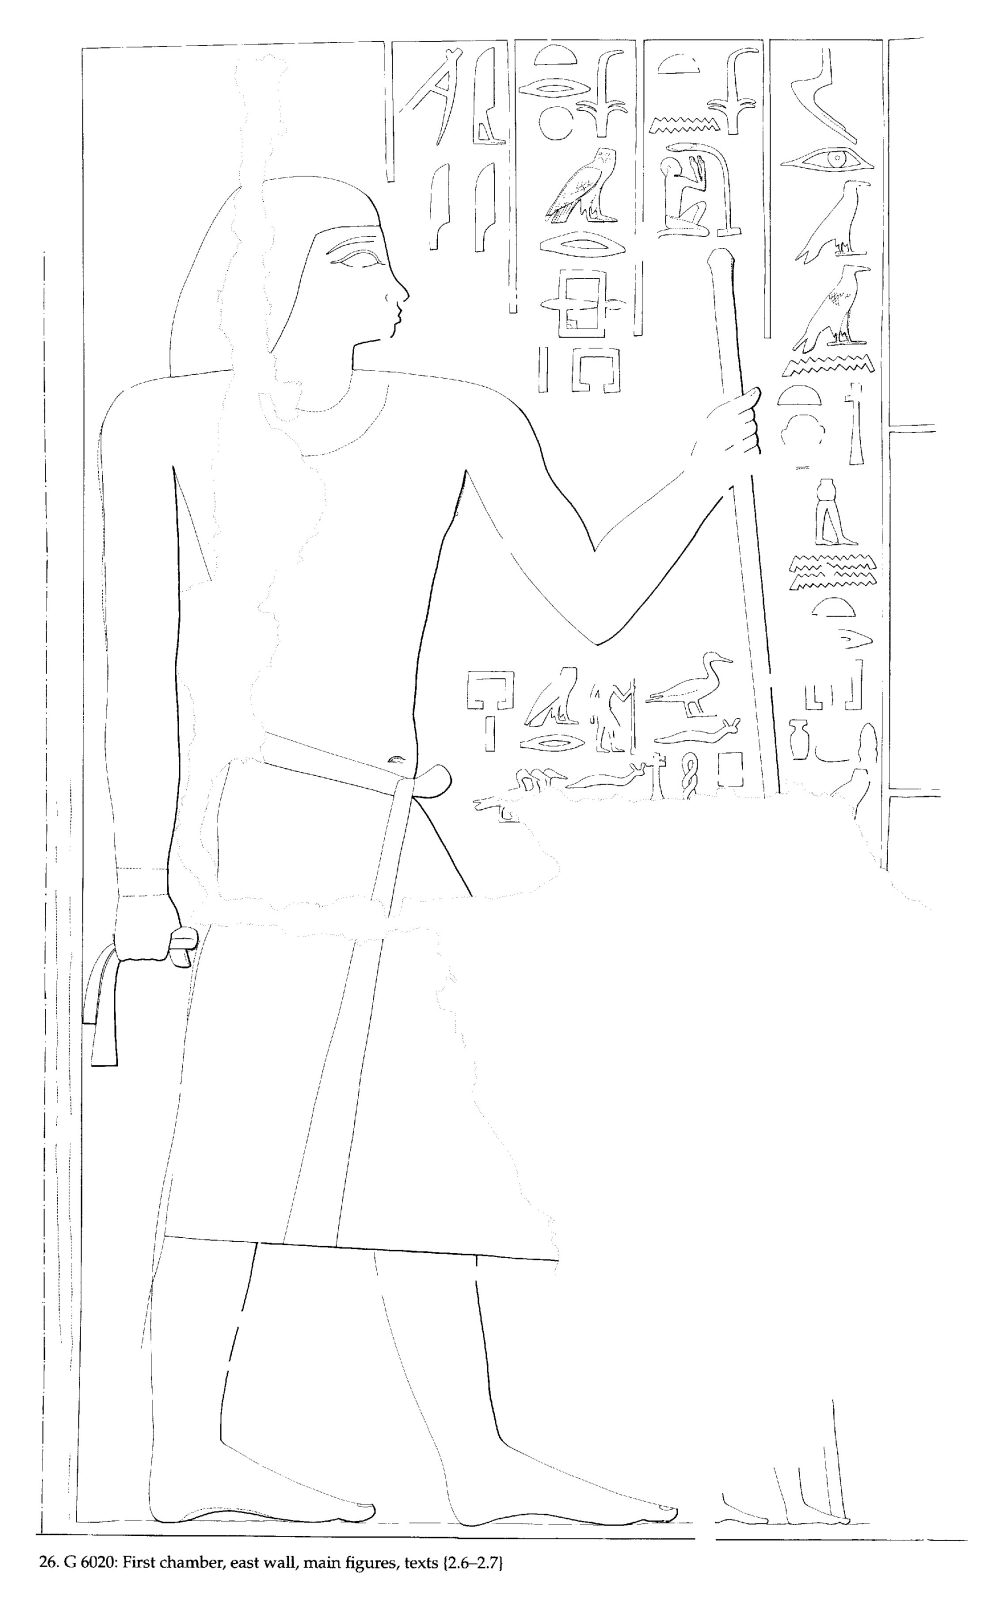 Drawings: G 6020: relief from first chamber, E wall